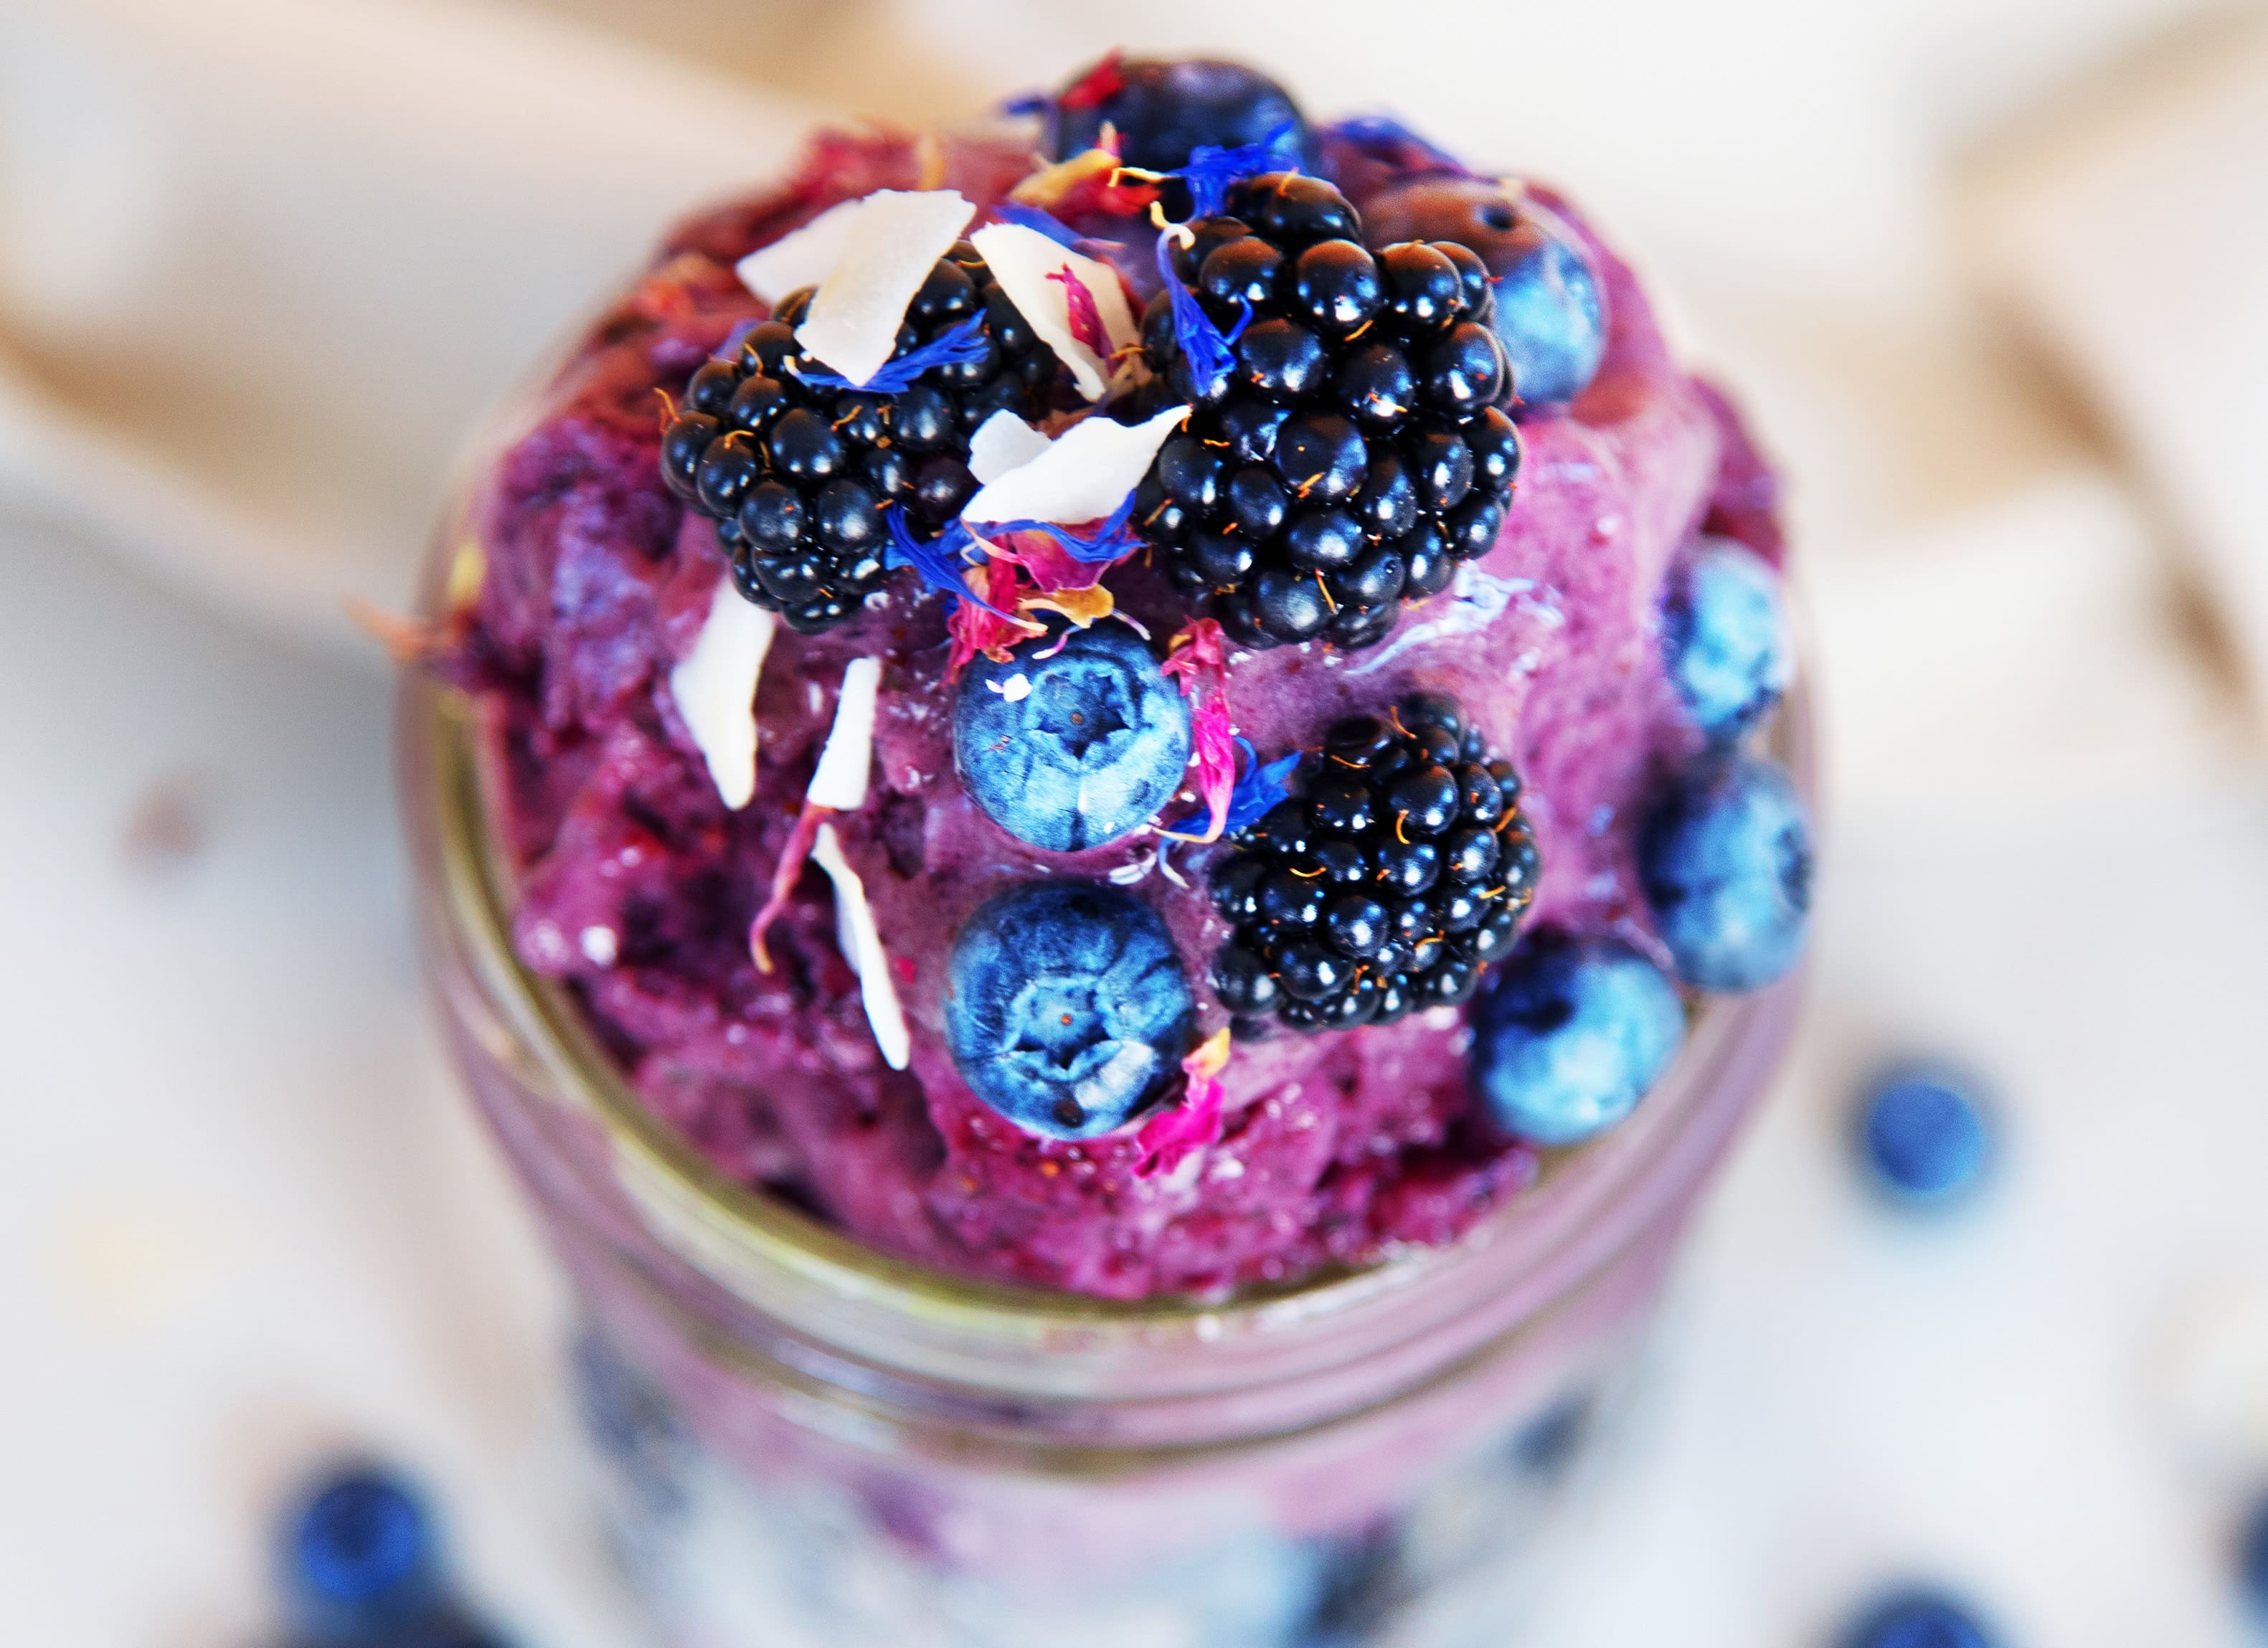 Blaubeer-Chia-Nicecream